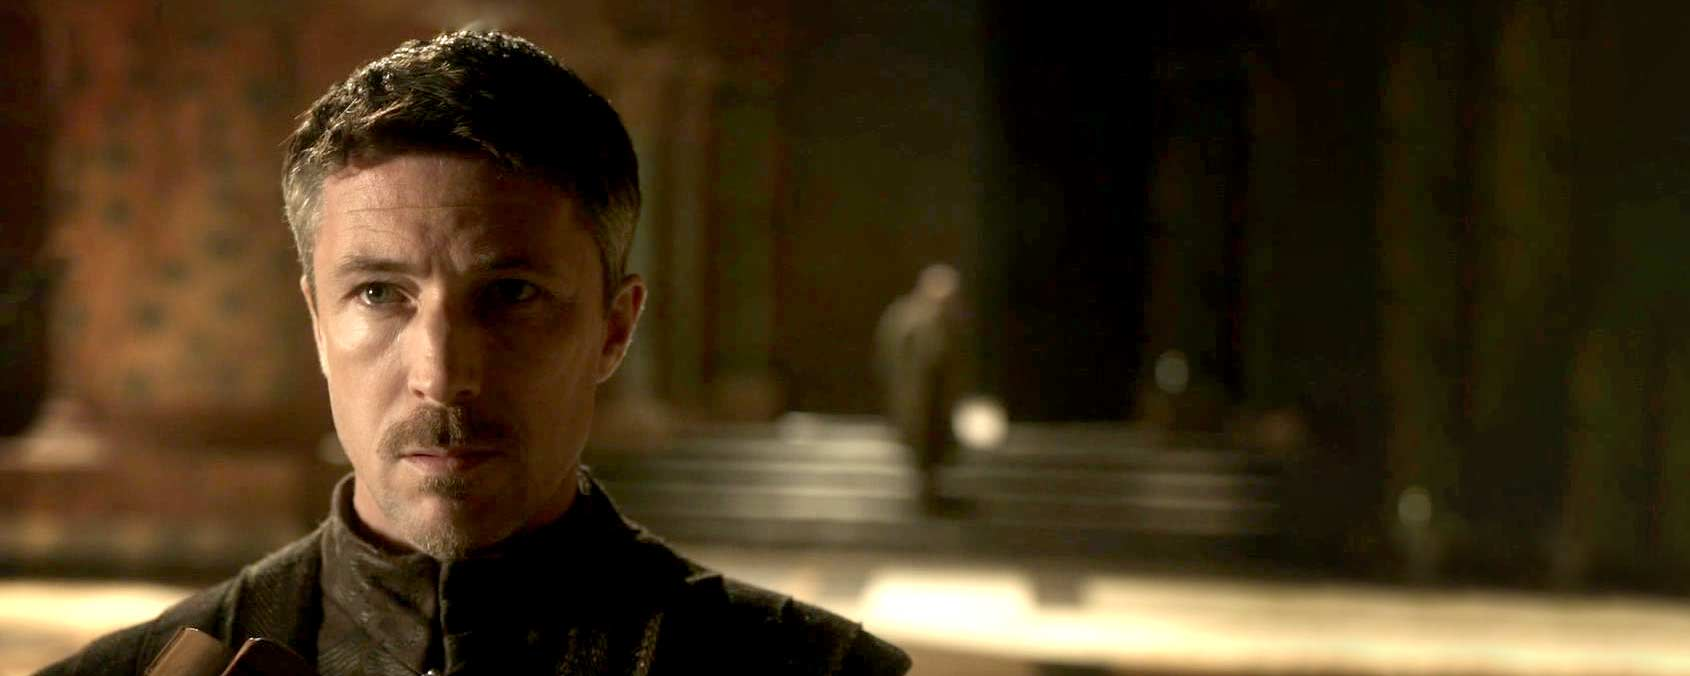 Quotes by Petyr 'Littlefinger' Baelish